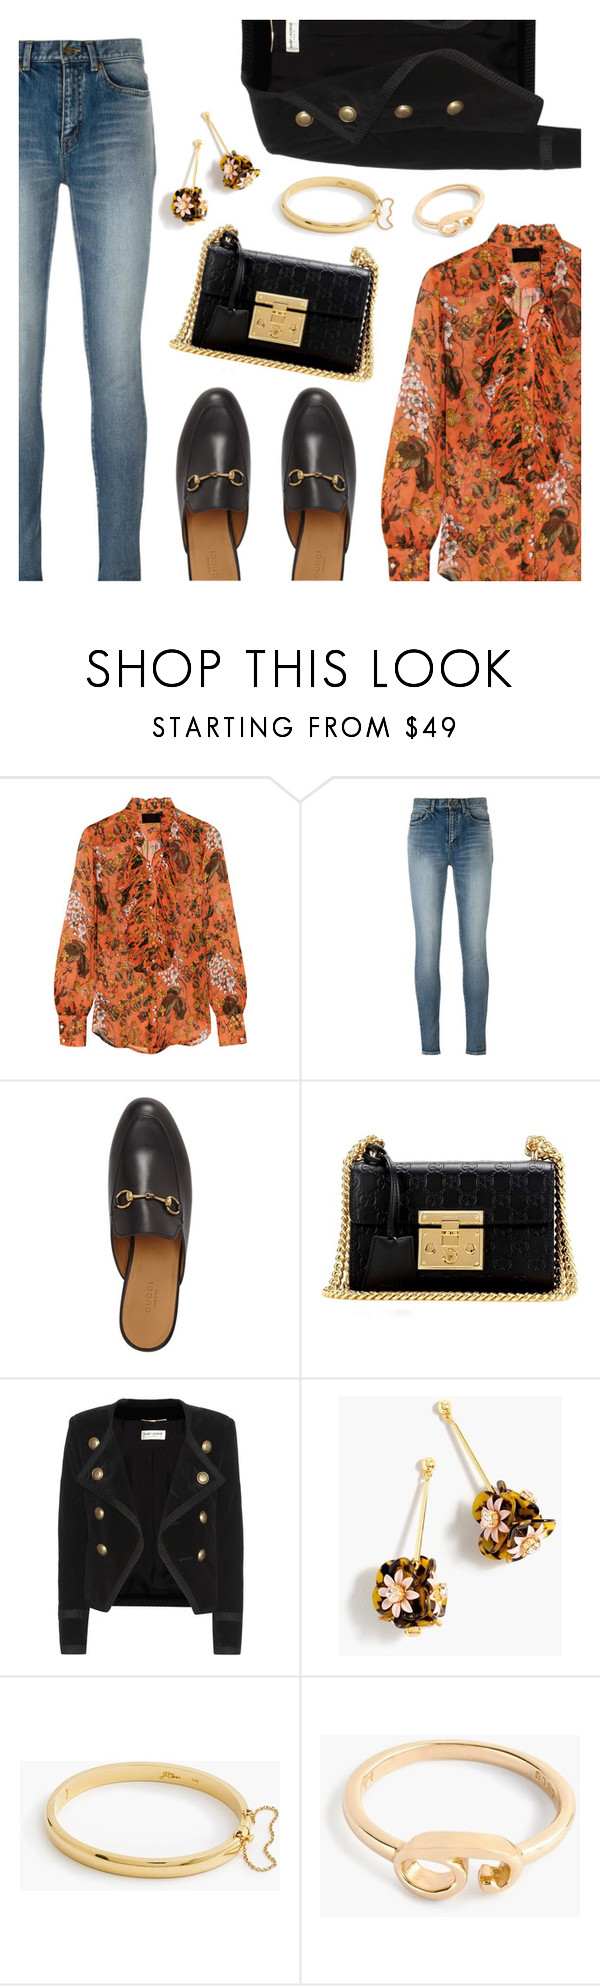 """Outfit of the Day 3"" by dressedbyrose ❤ liked on Polyvore featuring J.Crew, Yves Saint Laurent, Gucci, Lulu Frost, ootd and polyvoreeditorial"